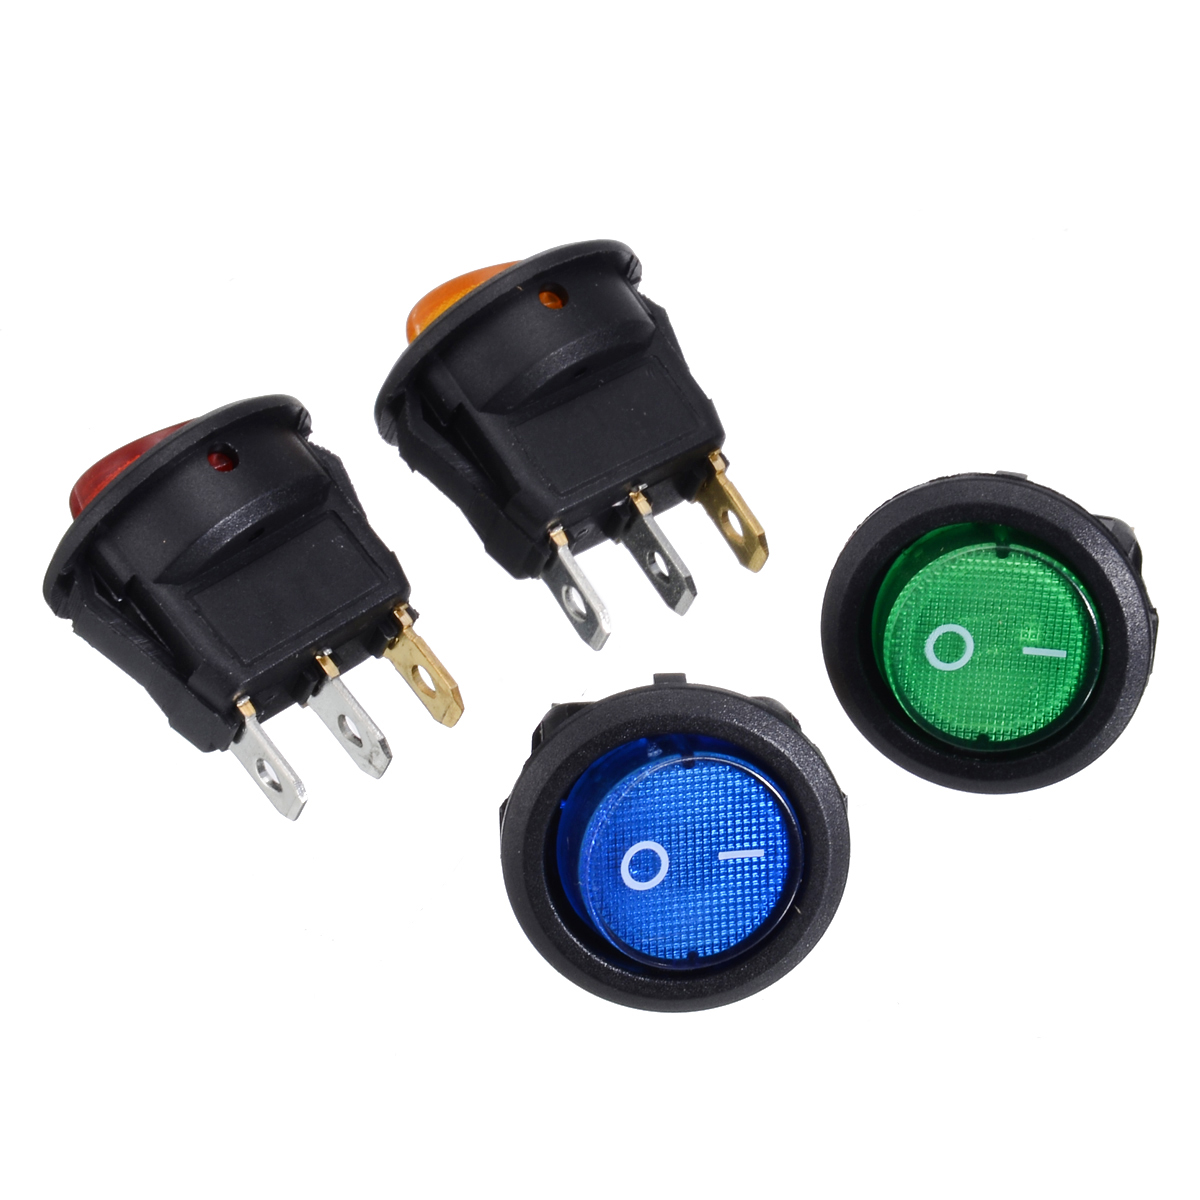 4X Round Car On Off LED Rocker Switch 12V 16A Auto Boat Toggle Switches SPST Red/Blue/Green/Yellow Dot Rocker Switch